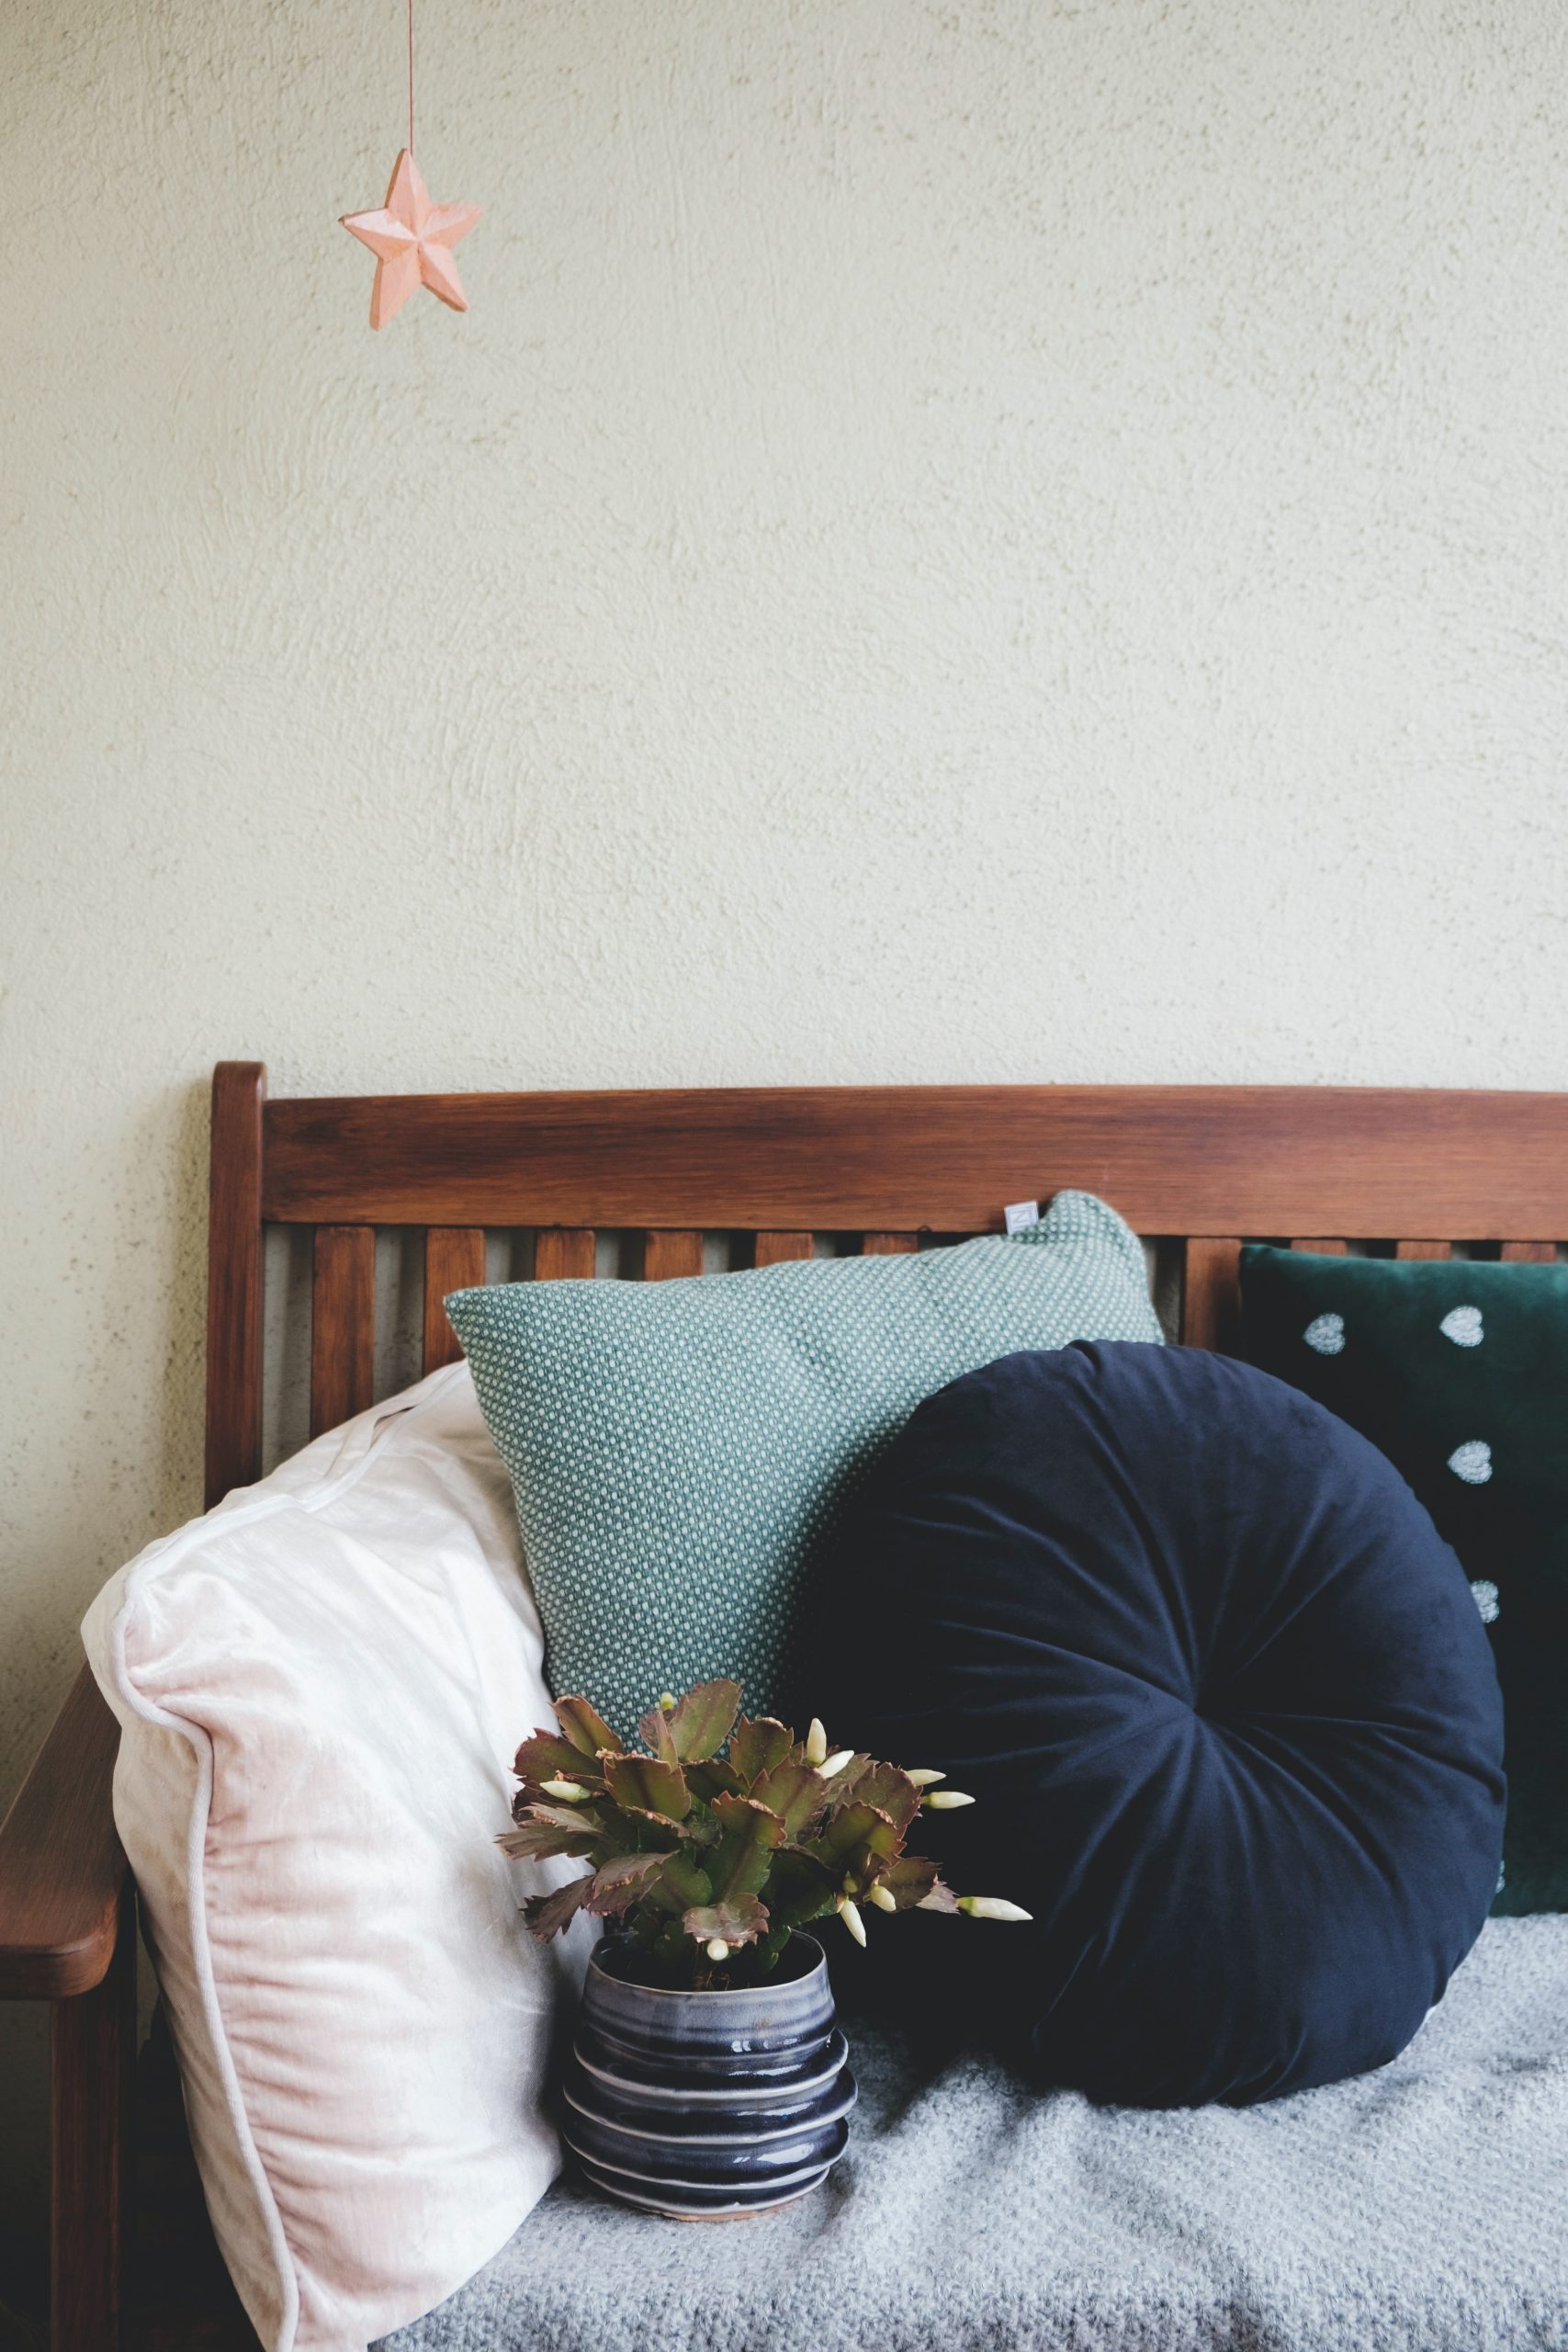 6 Crafty Projects to Redecorate Your Home With